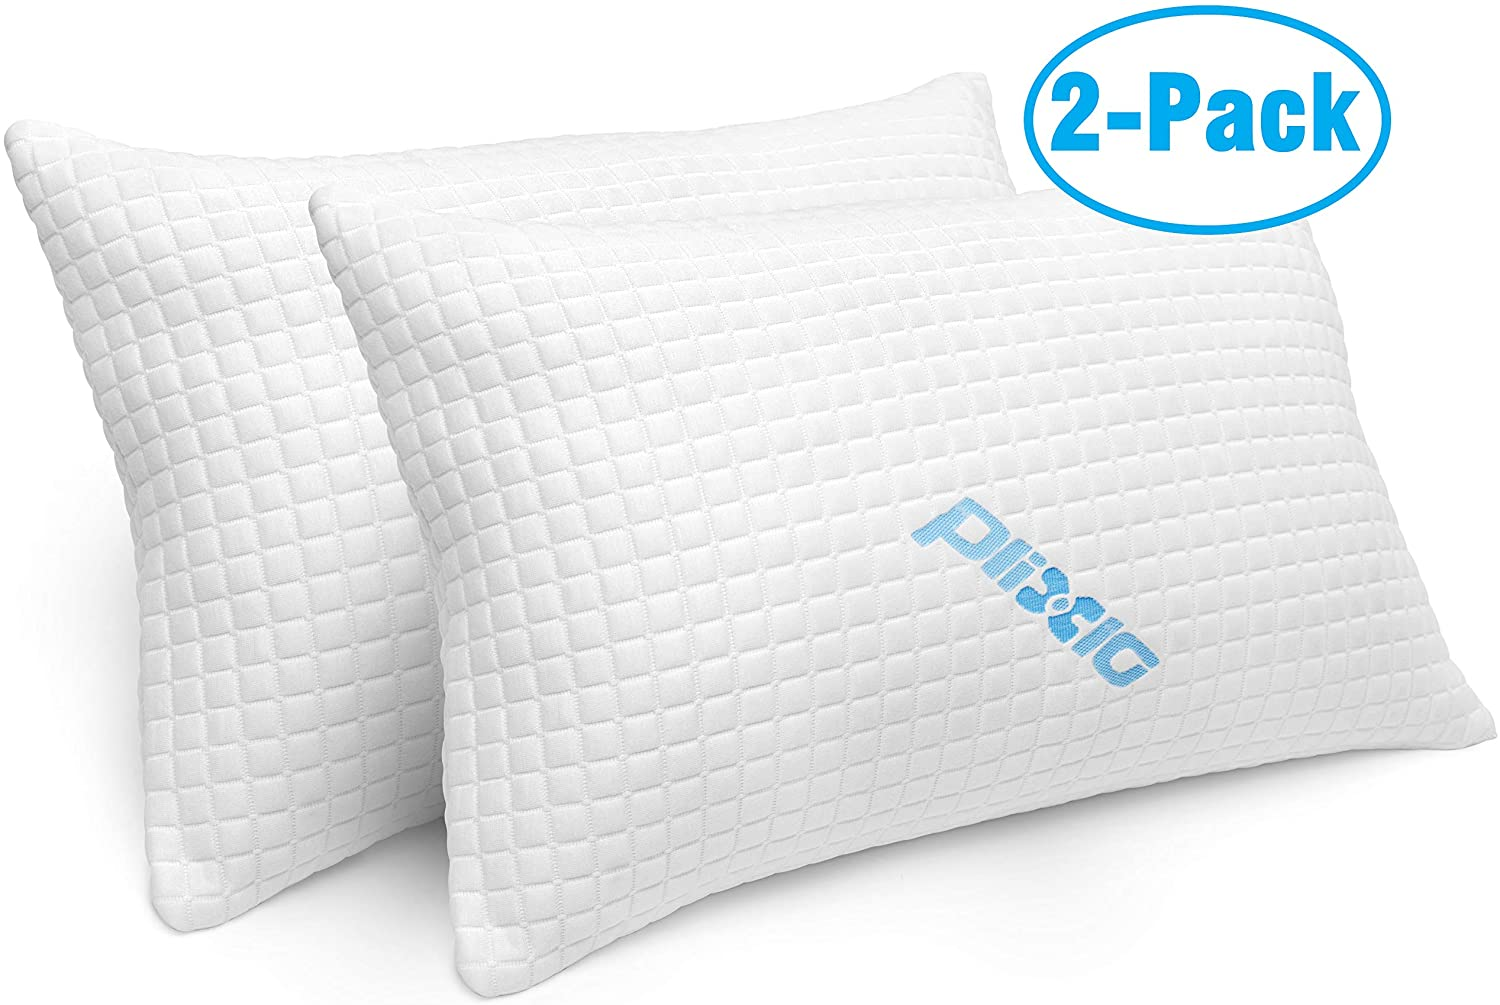 the best memory foam pillows according